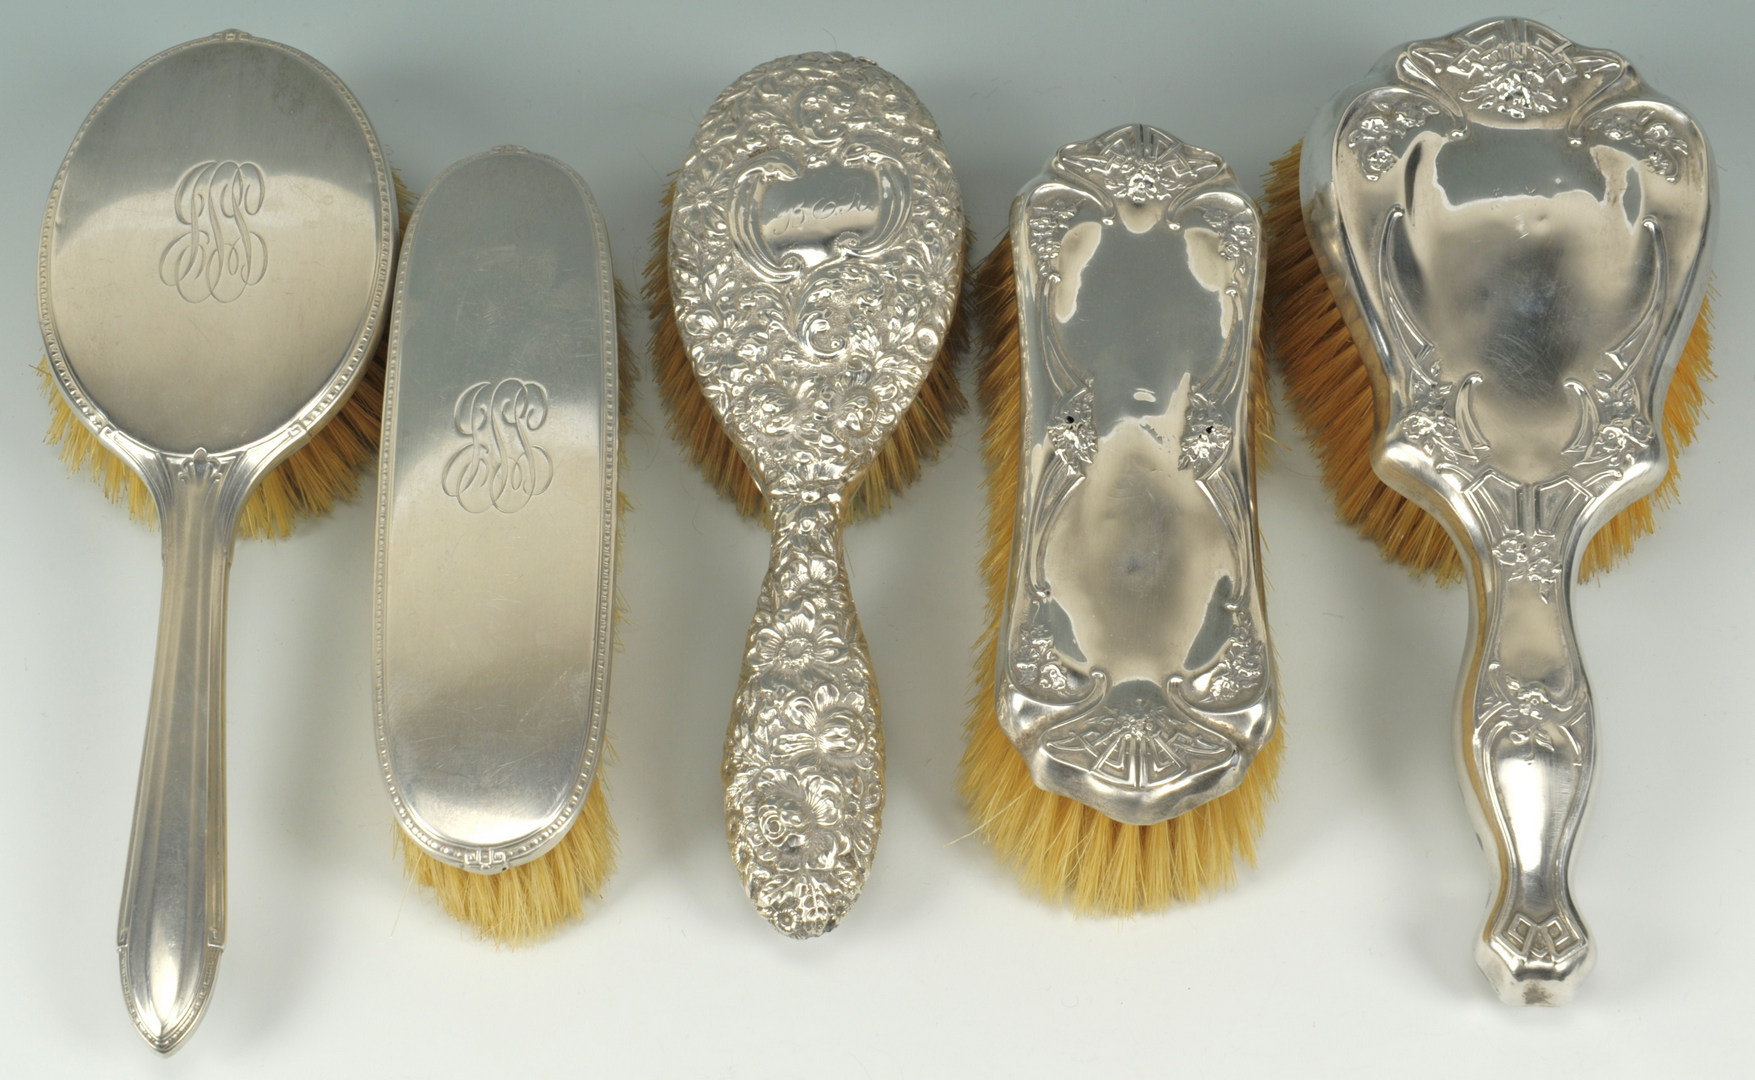 Lot 501: Silver brushes and mirrors, 7 pcs